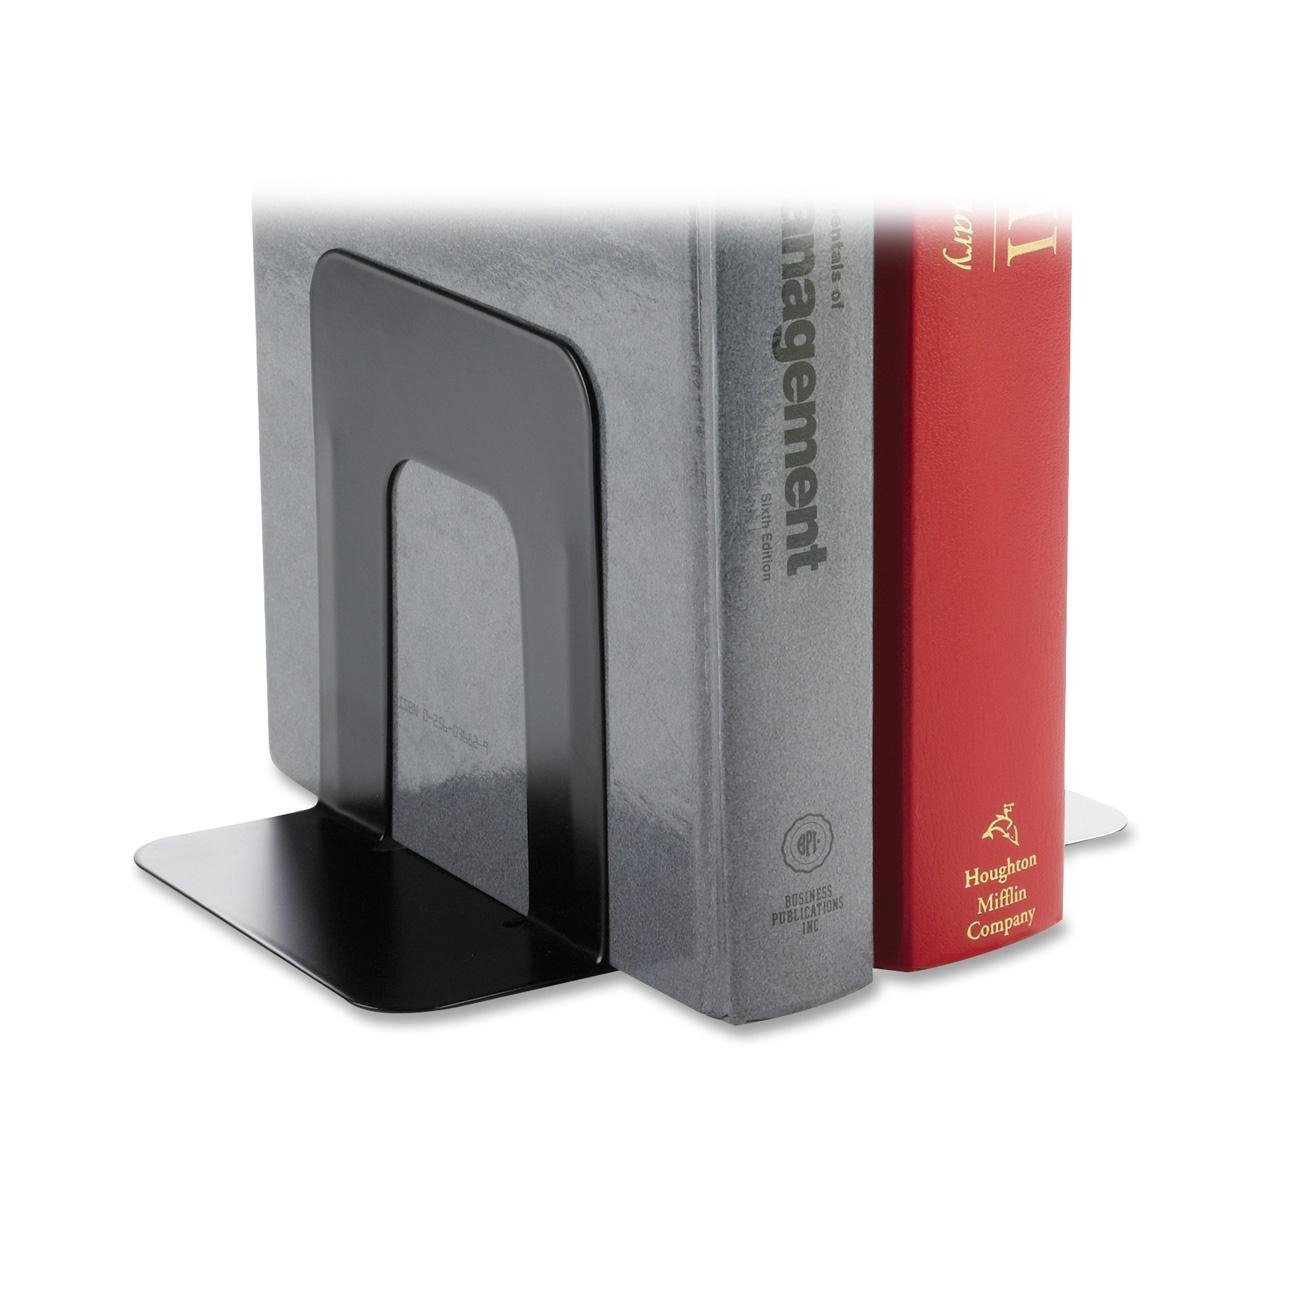 Business Source Products - Bookend Supports, Standard, 4-9/10''x5-7/10'' 5-3/10'', Black - Sold as 1 PR - Book supports are made of heavy-gauge steel with smooth edges and baked enamel finishes. Nonskid poly bases will not scratch or stain surfaces.